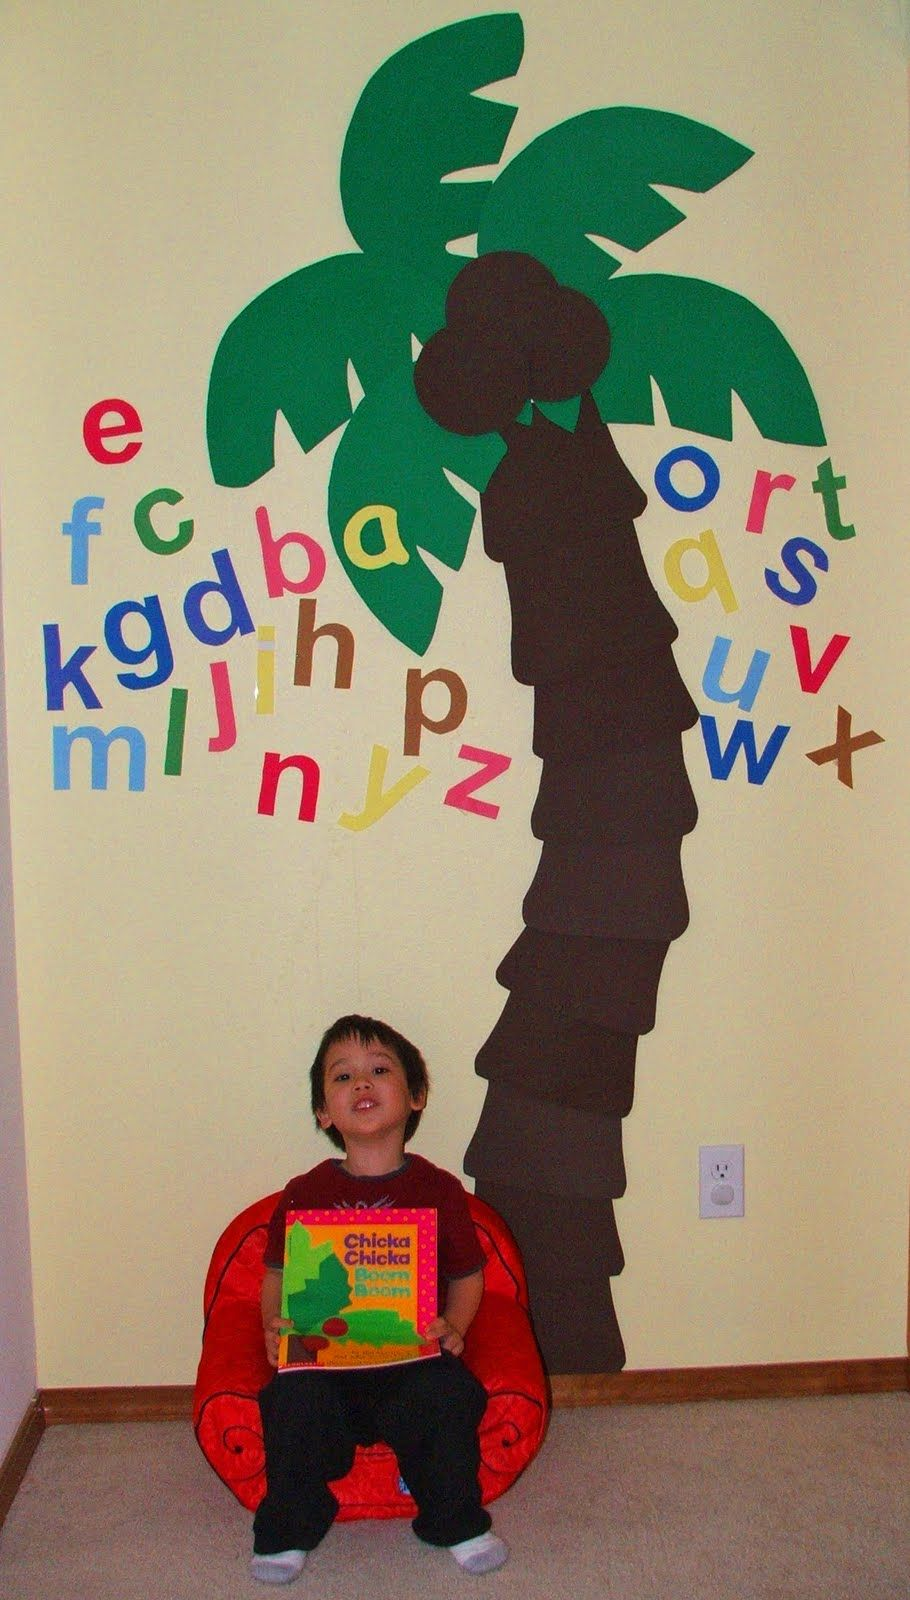 Chicka Chicka Boom Boom Tree | Education ideas for kids ... - photo#32